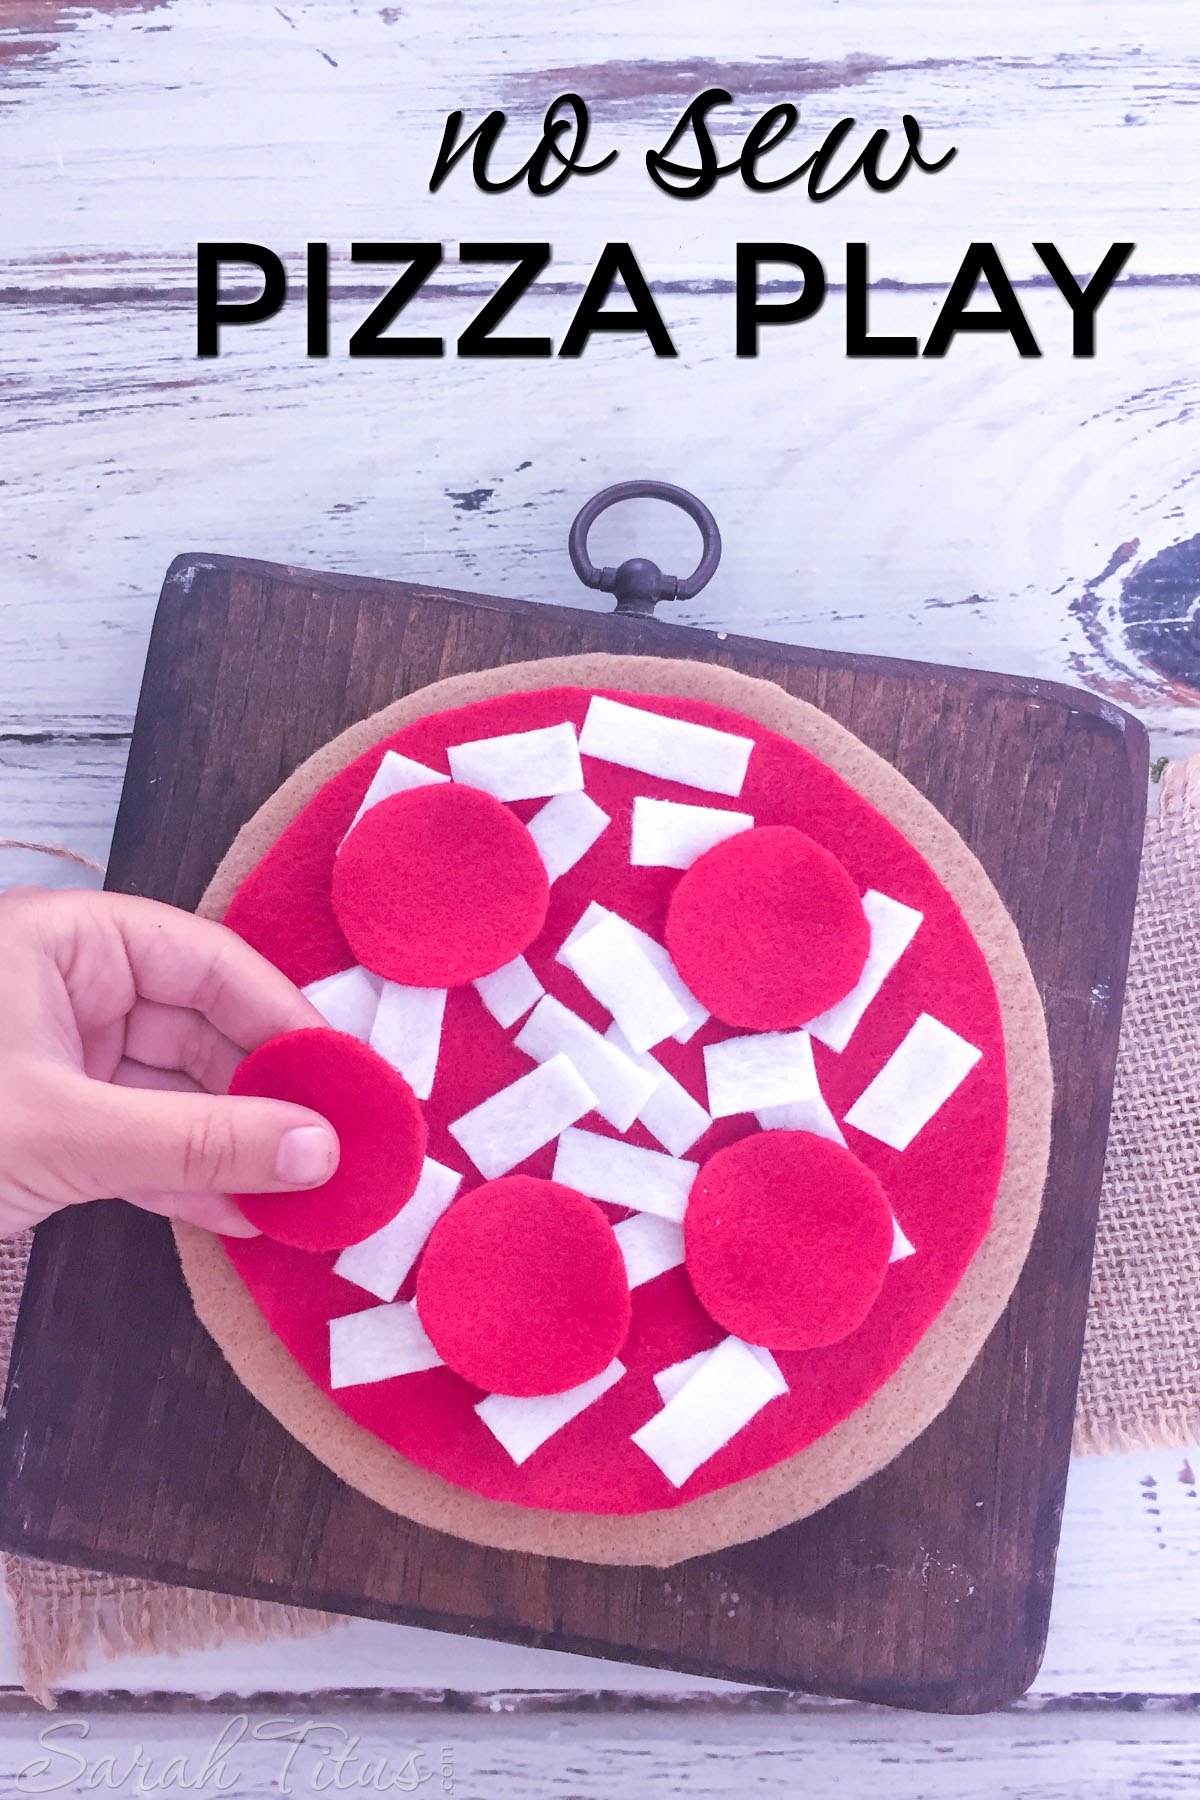 Use this no sew pizza play for all things math related! It's super fun for the kids, extremely easy to make, and educational, all at the same time!